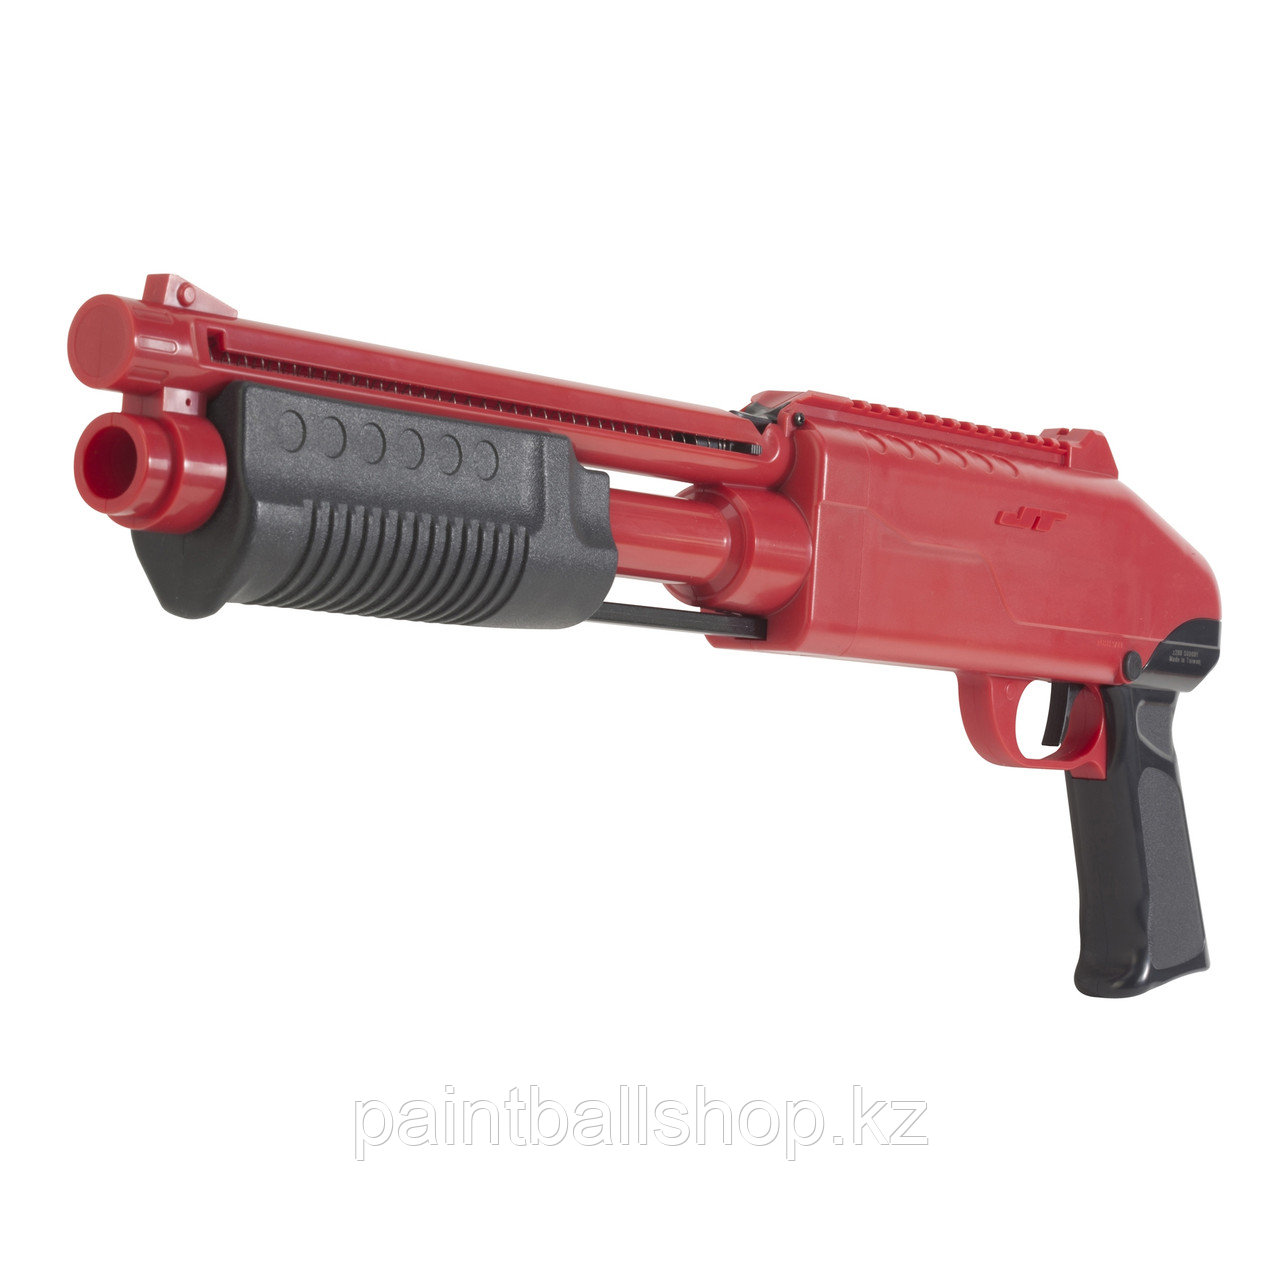 МАРКЕР JT SPLATMASTER Z200 SHOTGUN red